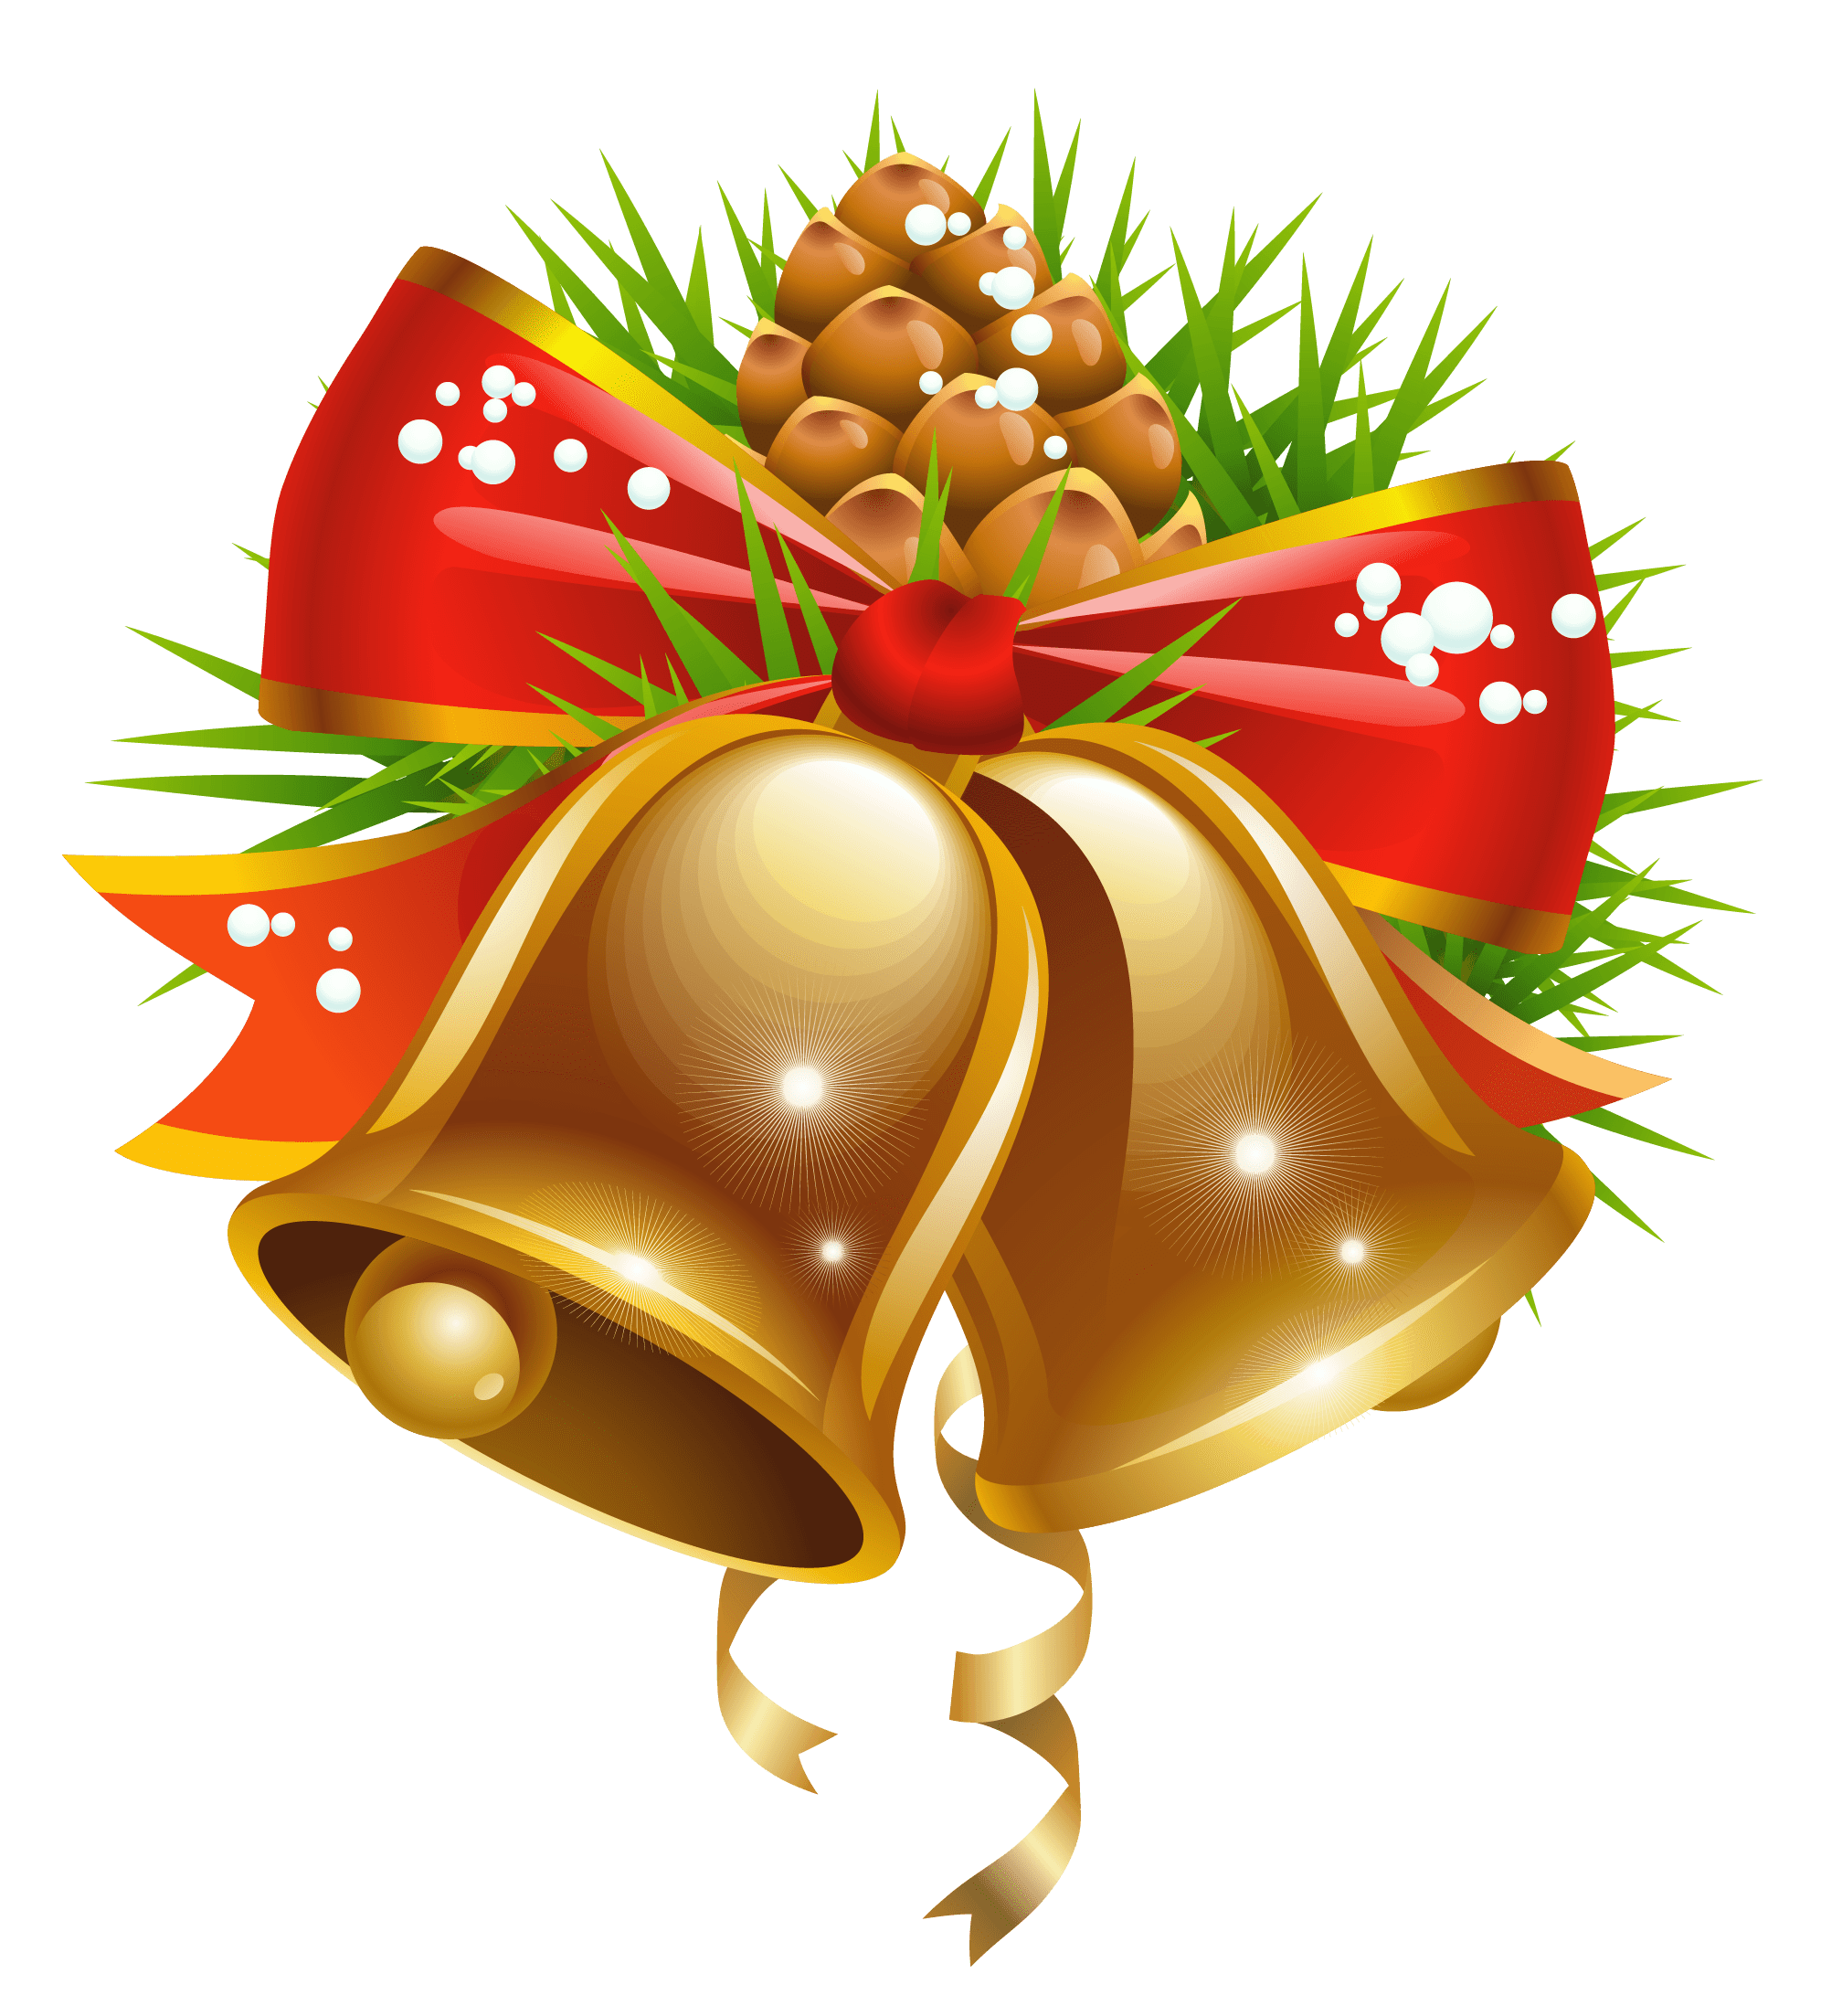 Ornament clipart bell. Christmas decoration transparent png